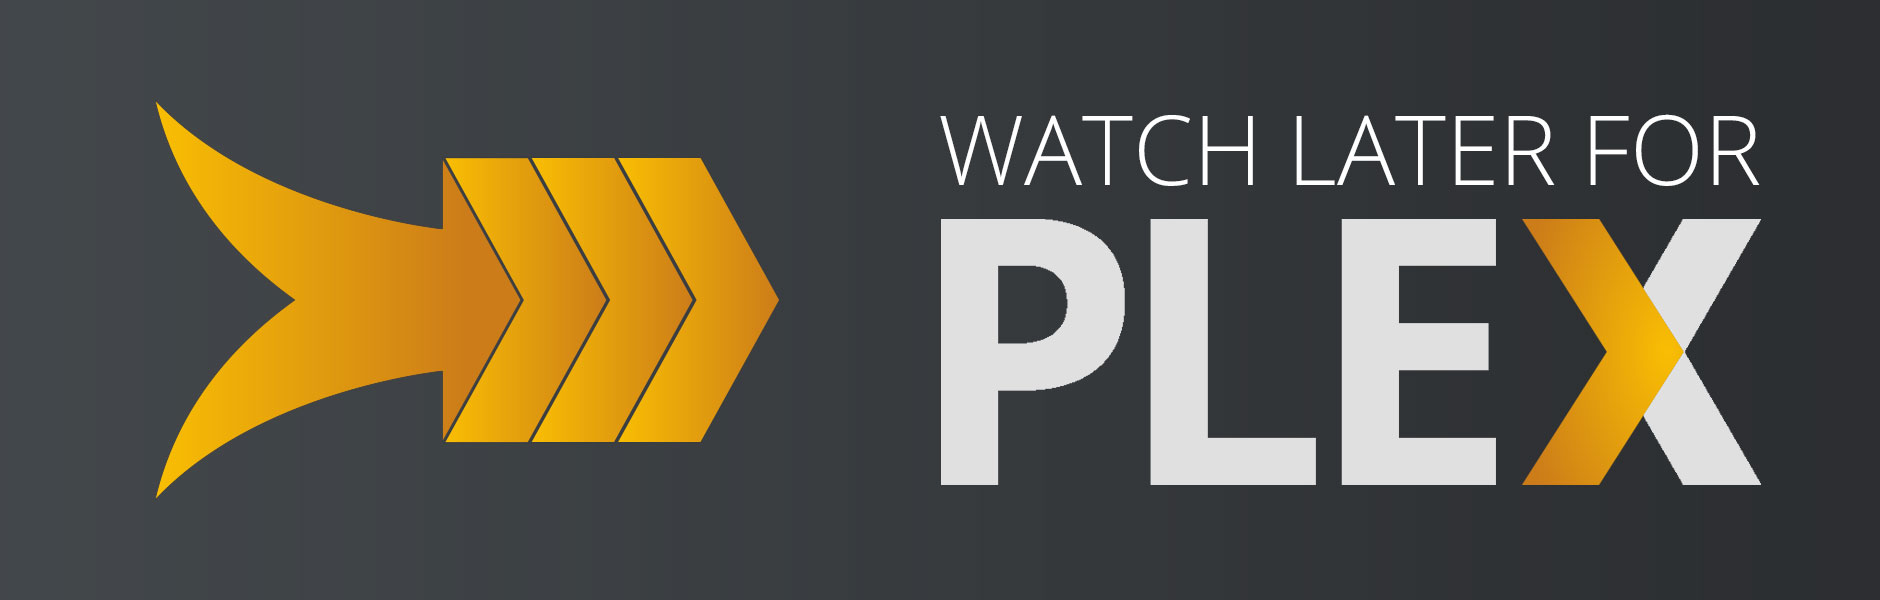 Watch Later for Plex